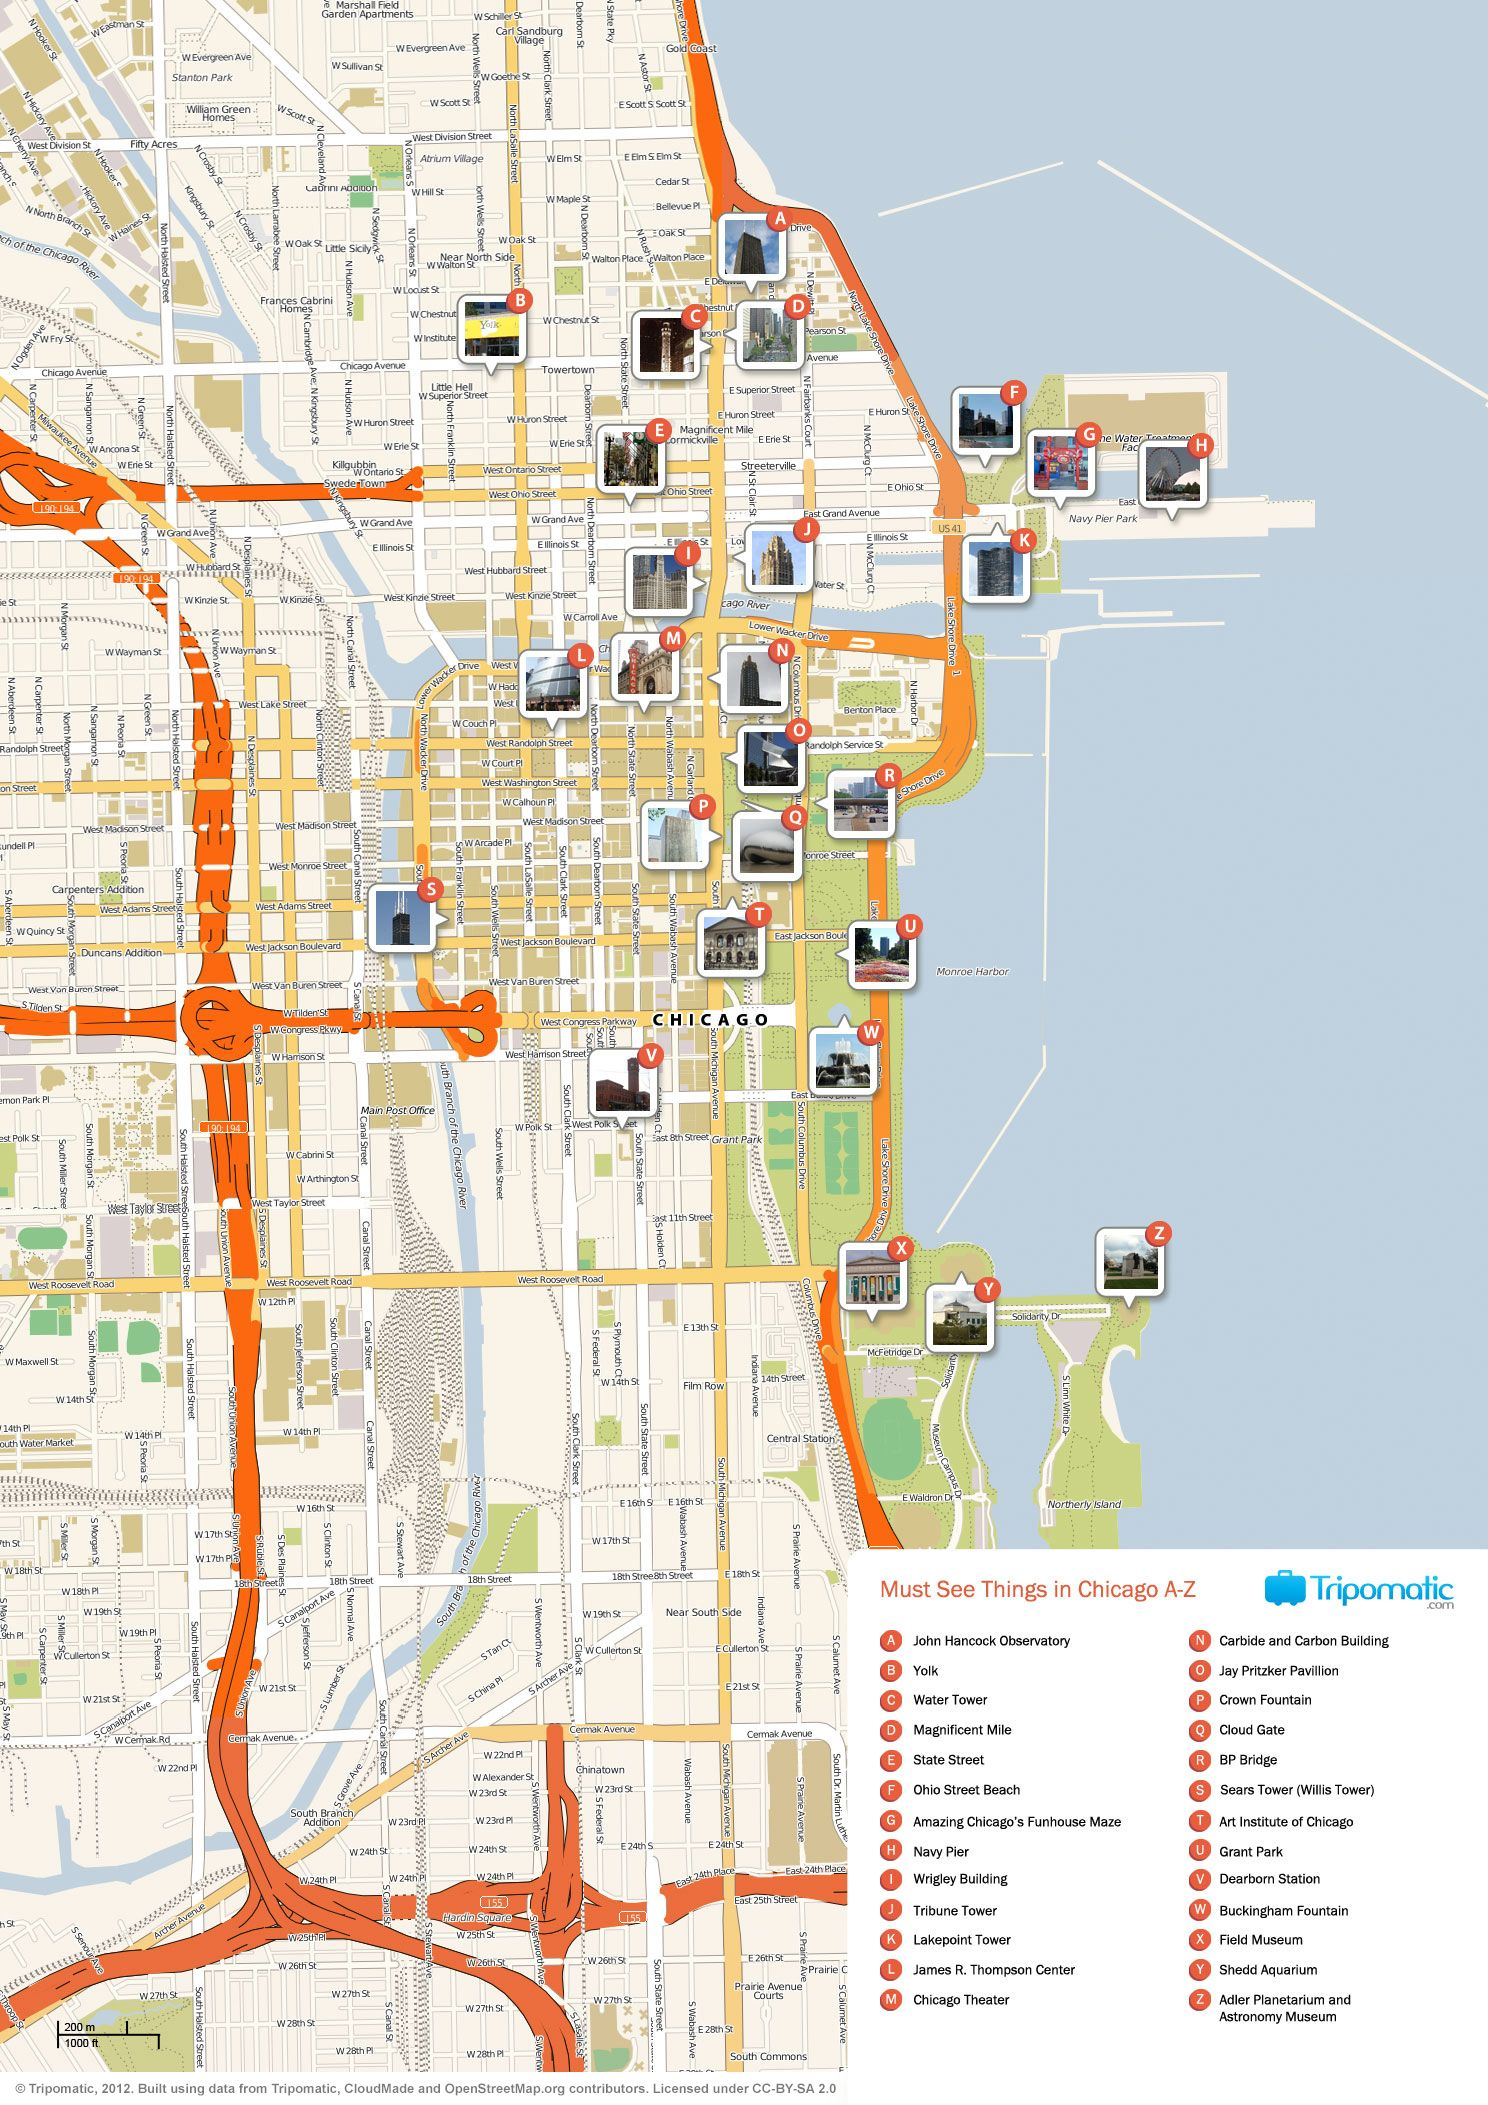 Map Of Chicago Attractions Tripomaticcom Places To Visit - Chicago map attractions